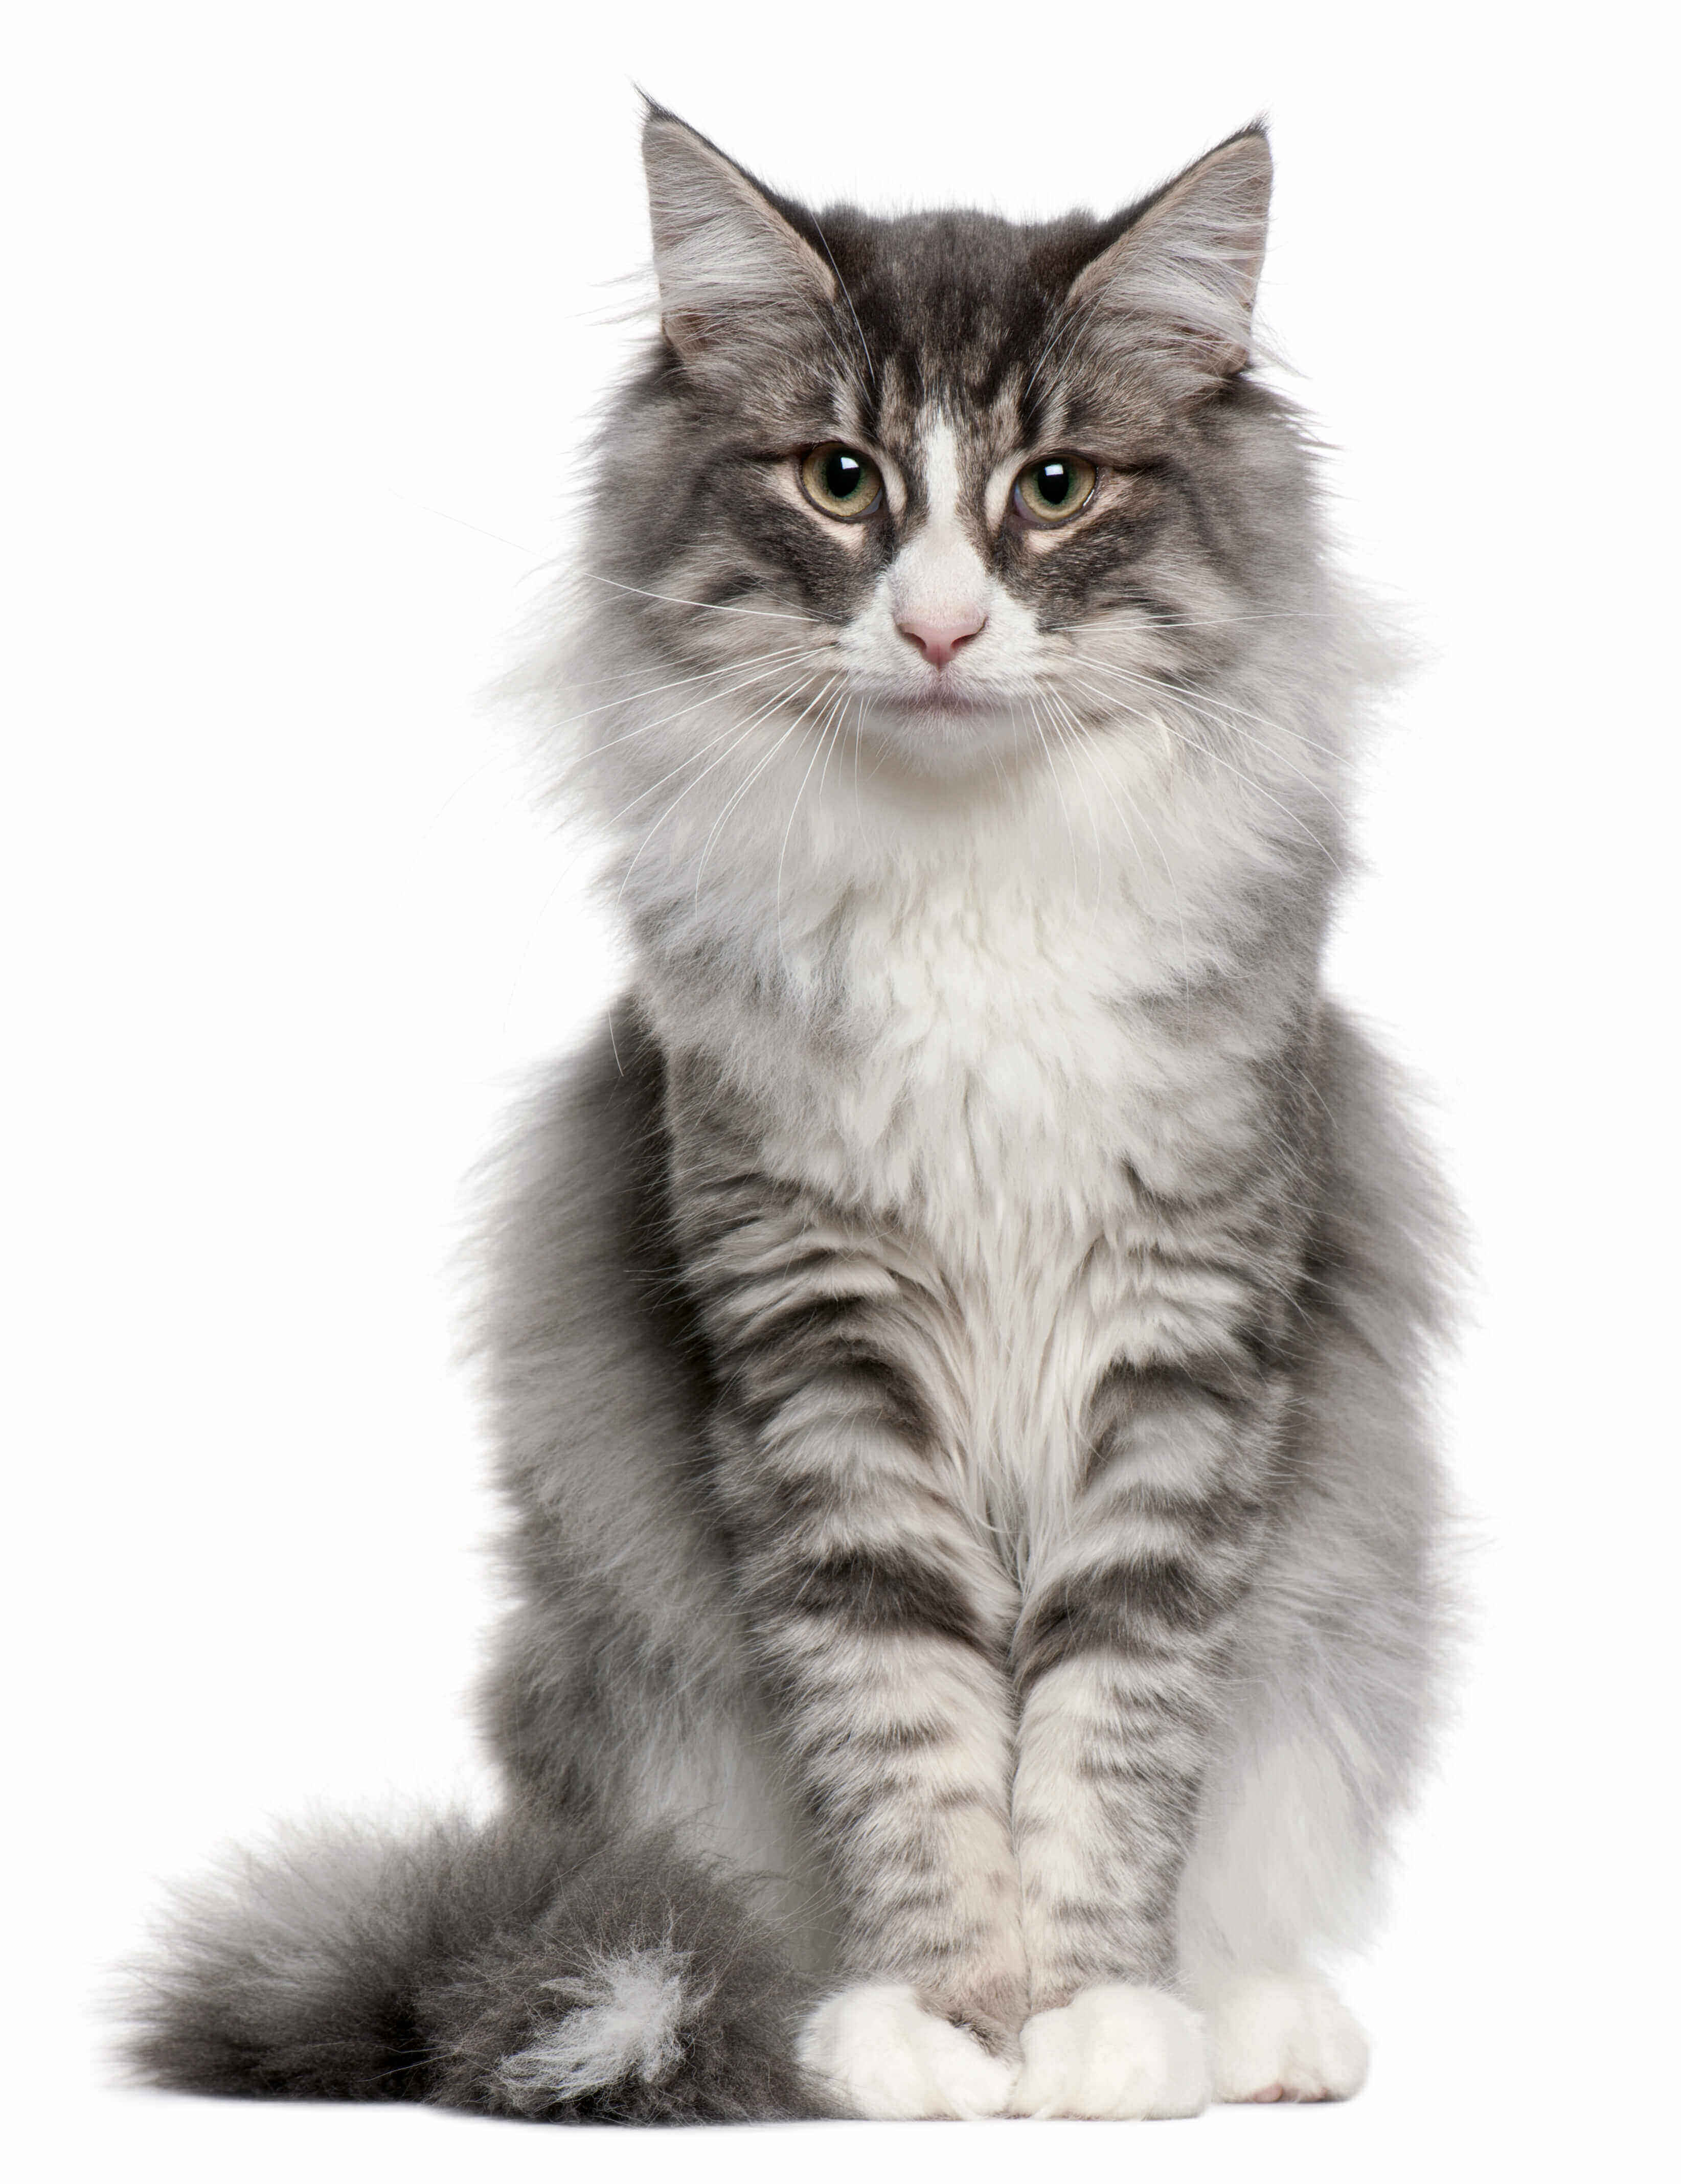 Popular Cat Breeds Facts Characteristics Of Top Breeds Of Cat